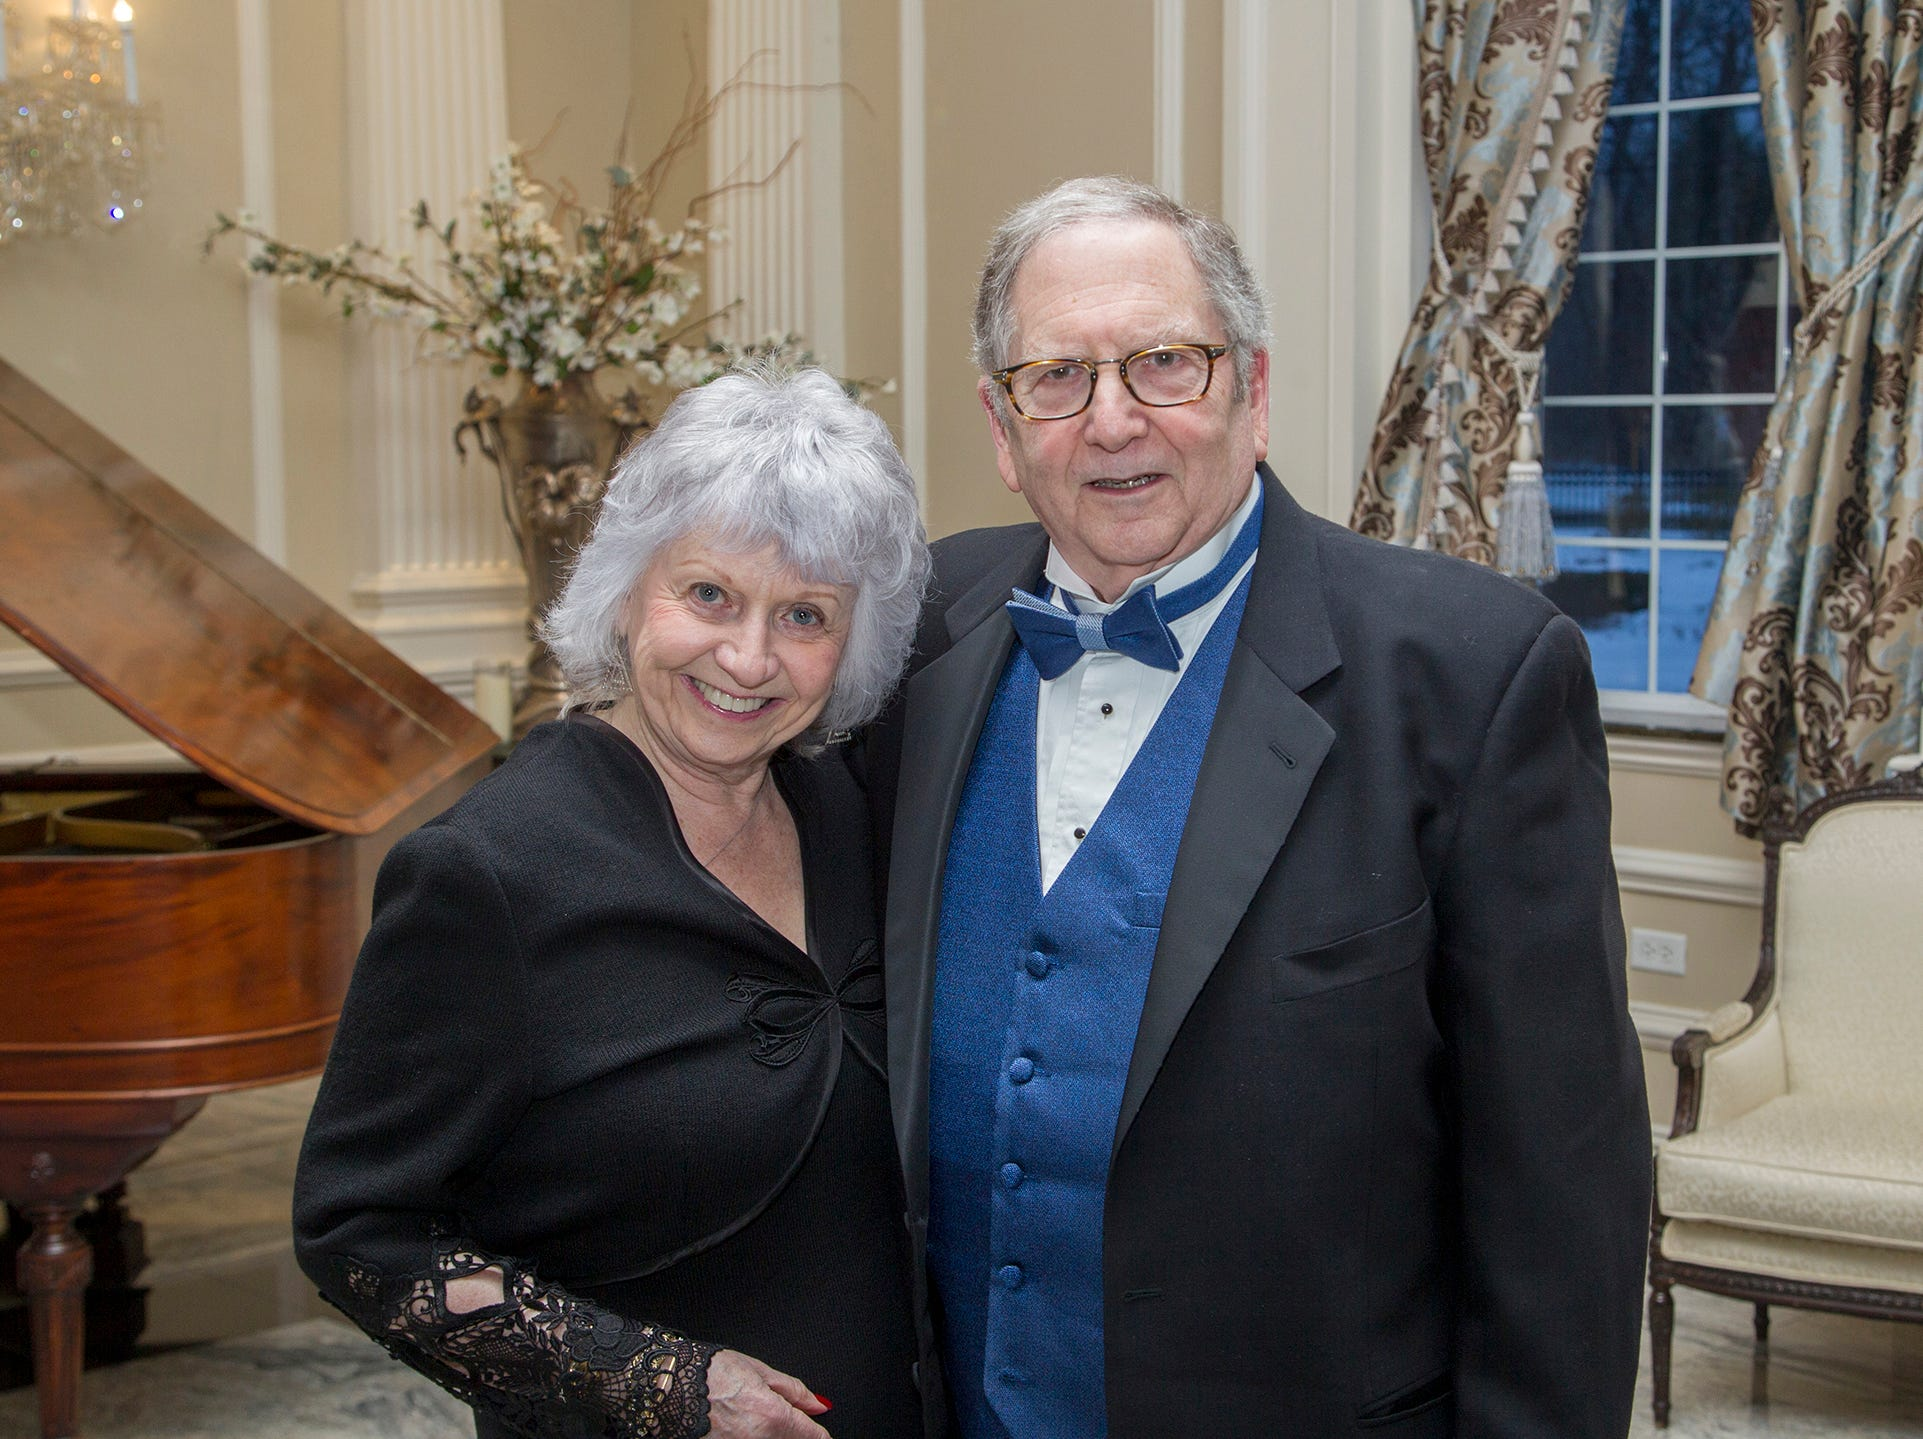 Sharlene and Paul Vichness. Ramapo College held its 37th Annual Distinguished Citizens Dinner at Rockleigh Country Club. 03/02/2019